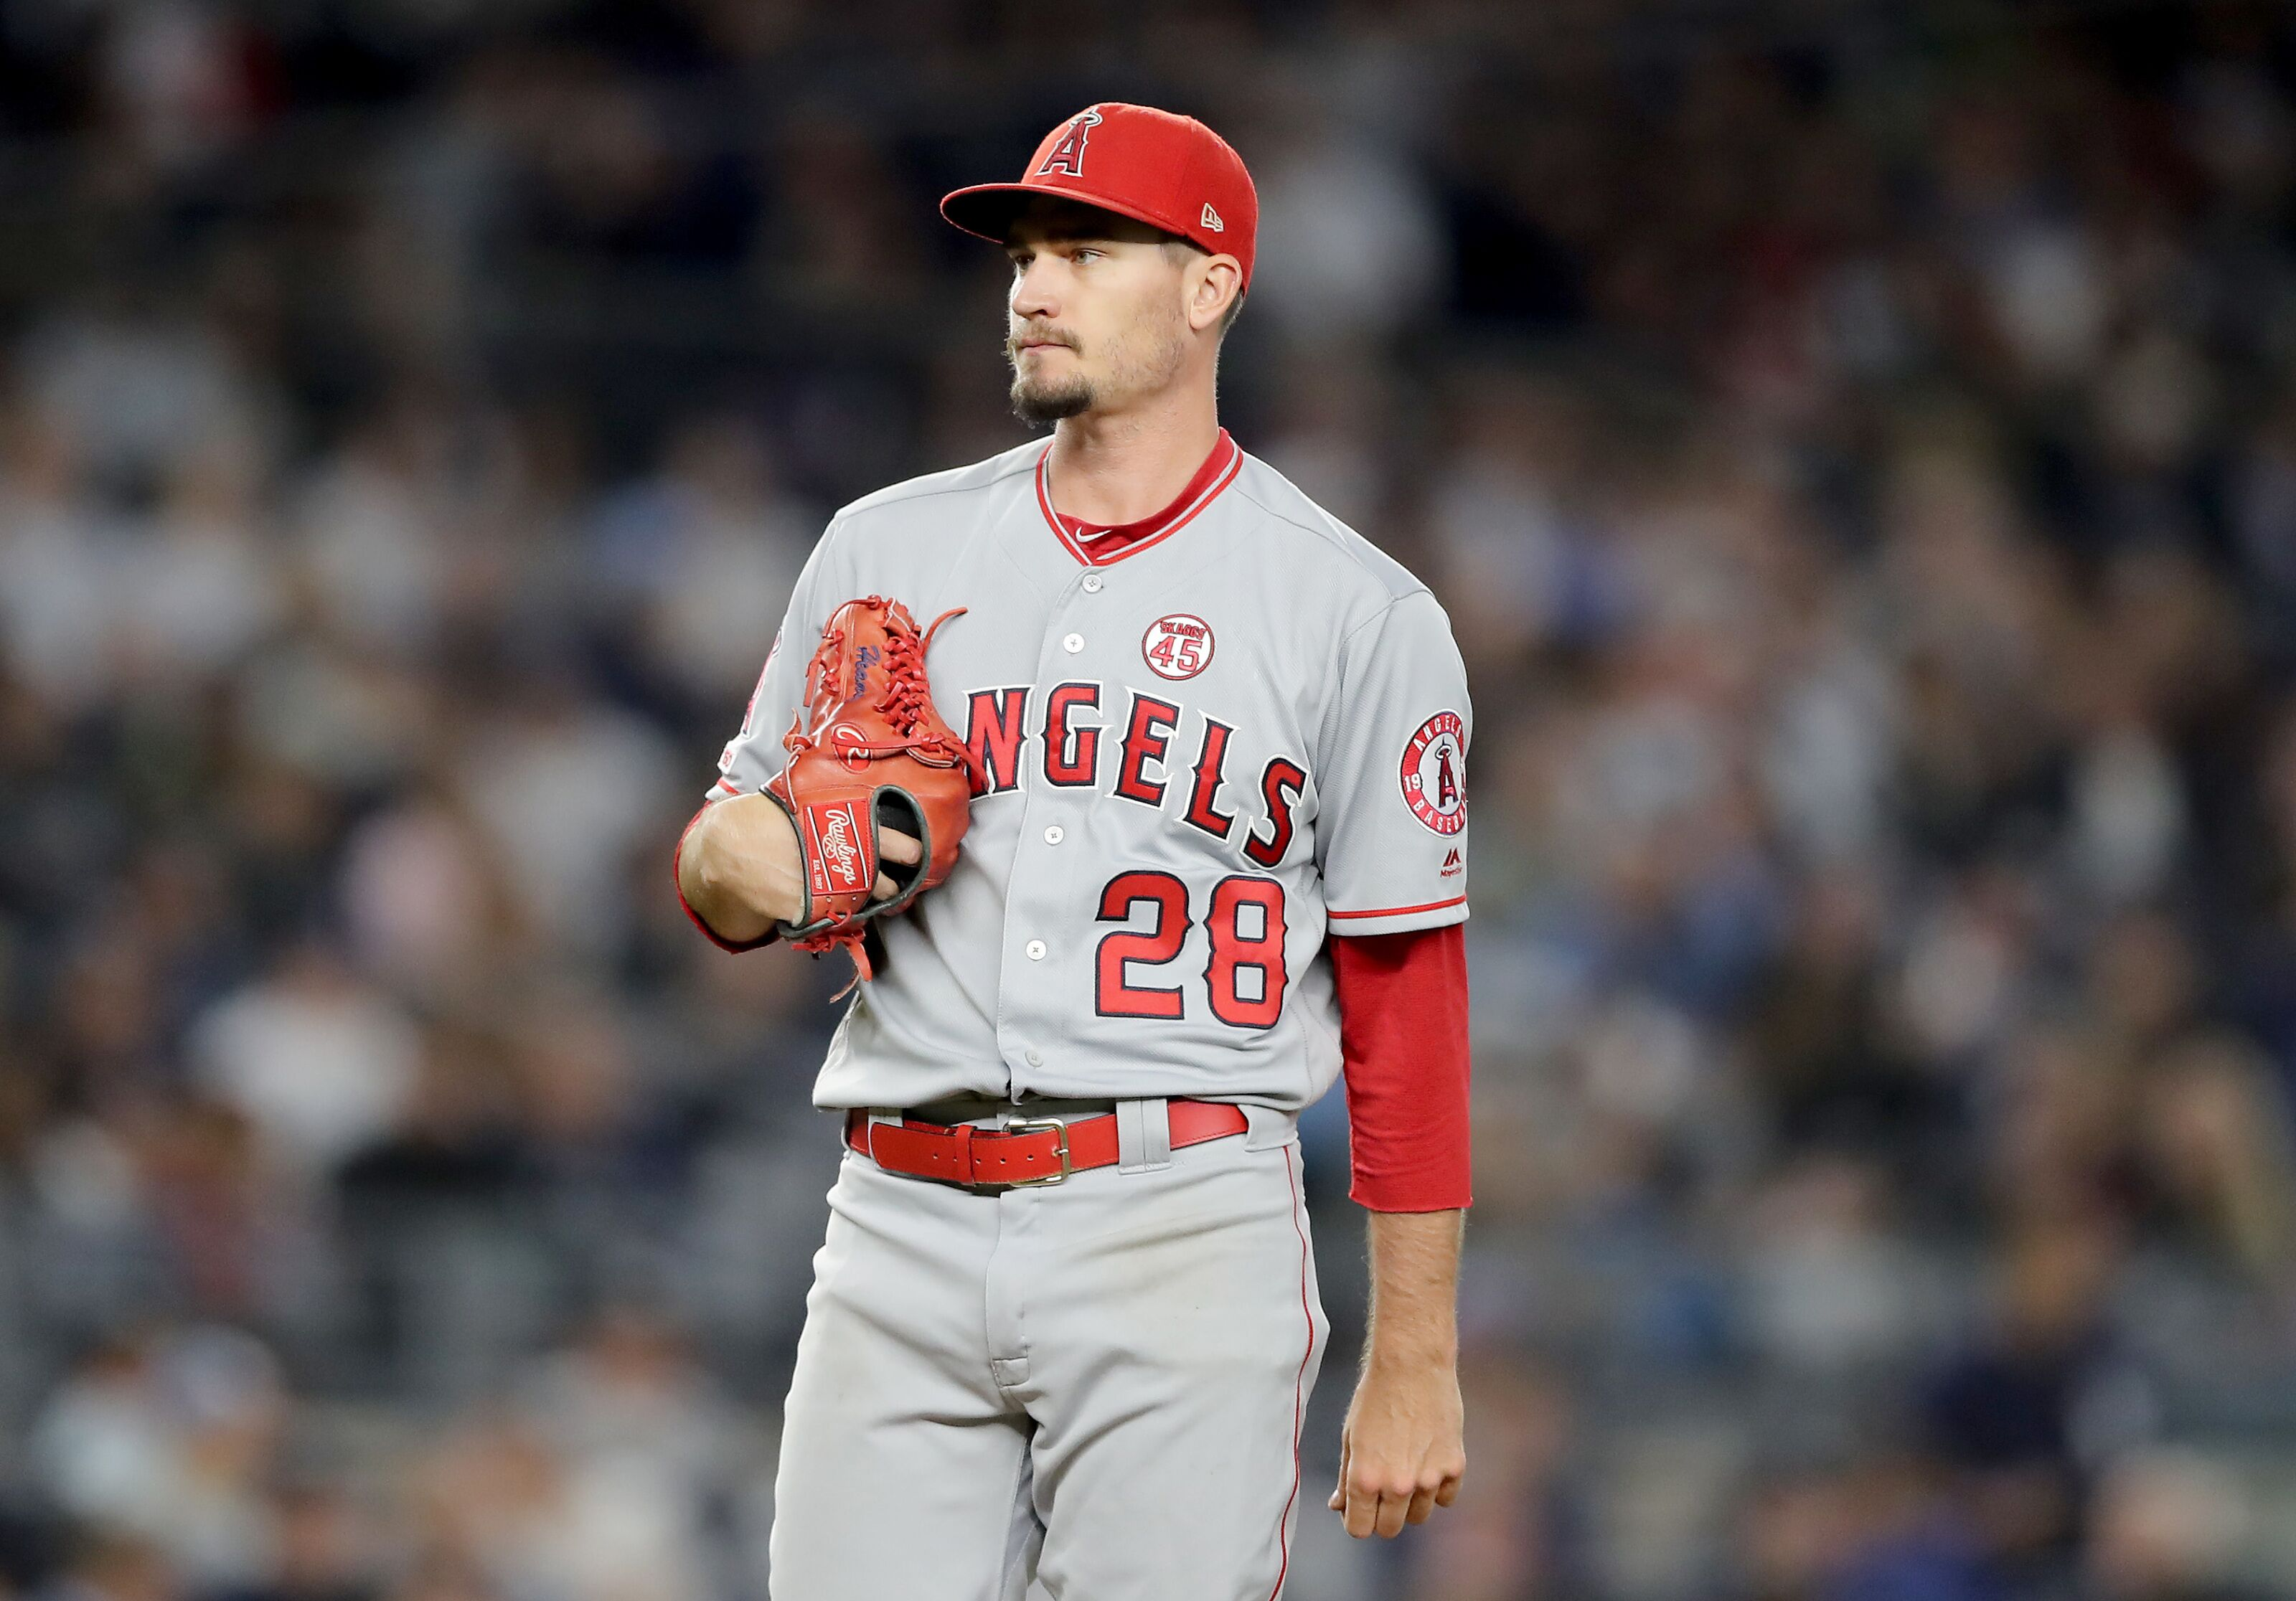 Los Angeles Angels hold dubious pitching distinction